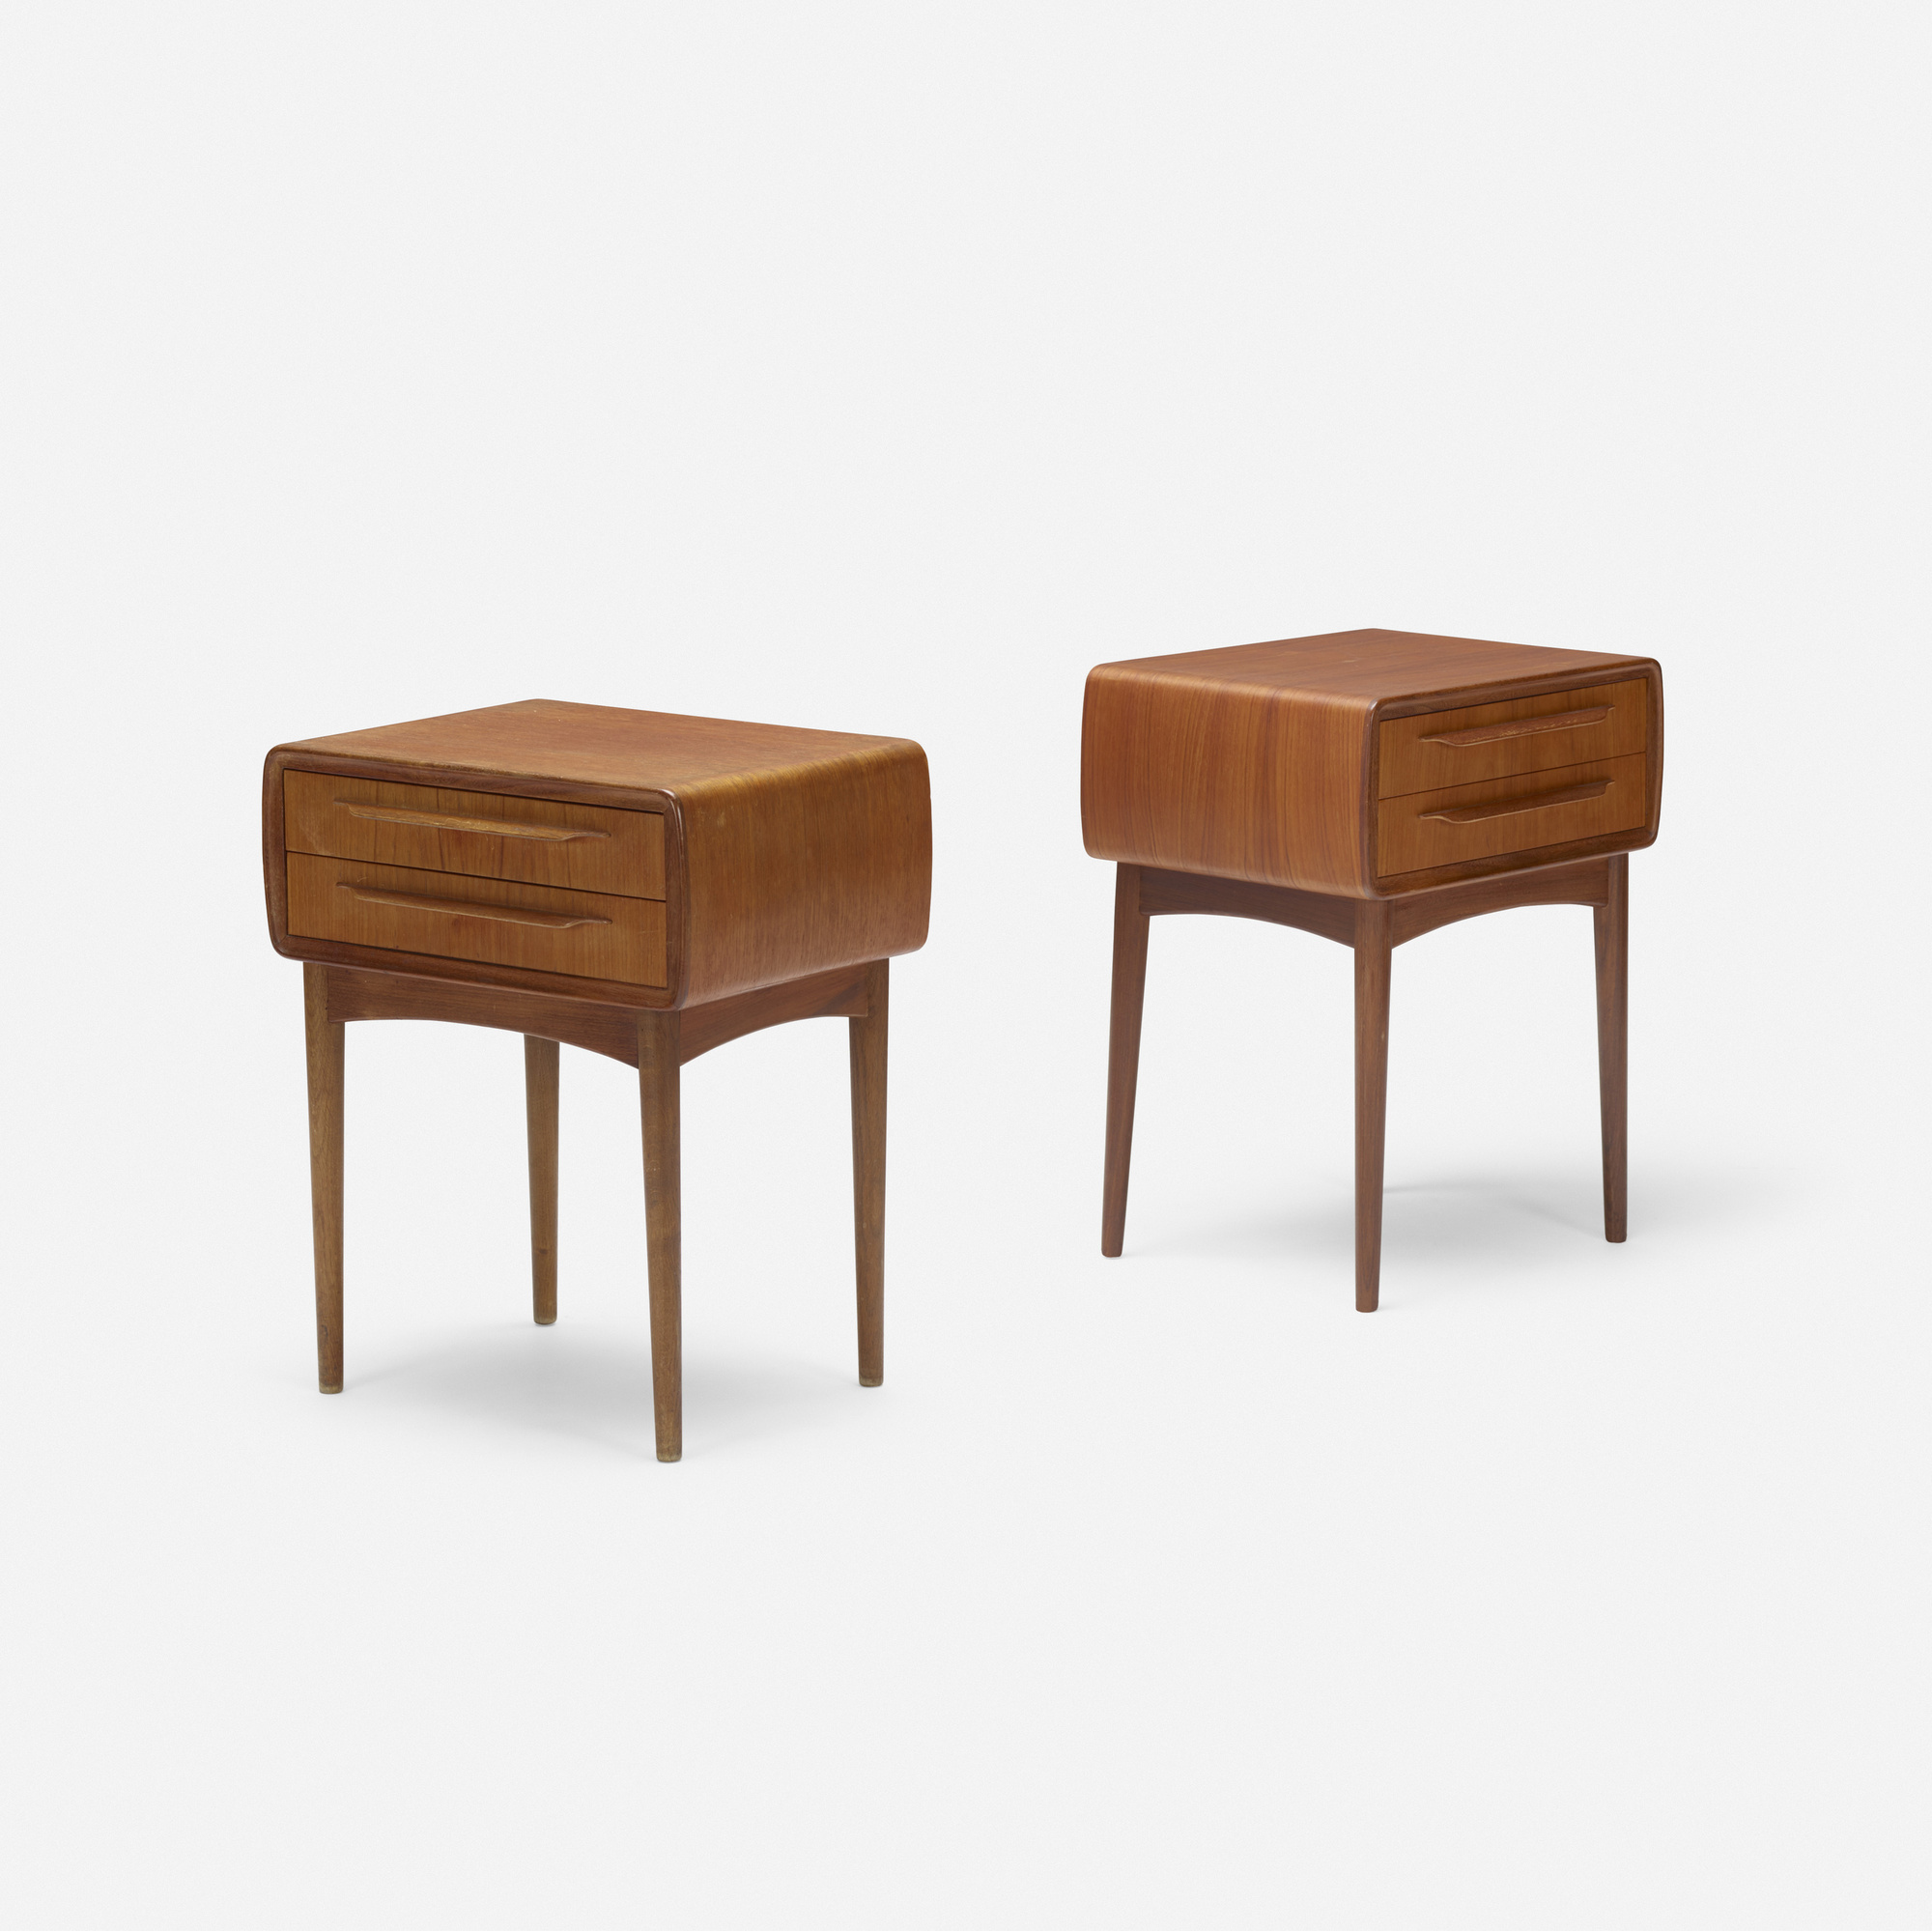 331: Johannes Andersen / nightstands, pair (1 of 3)